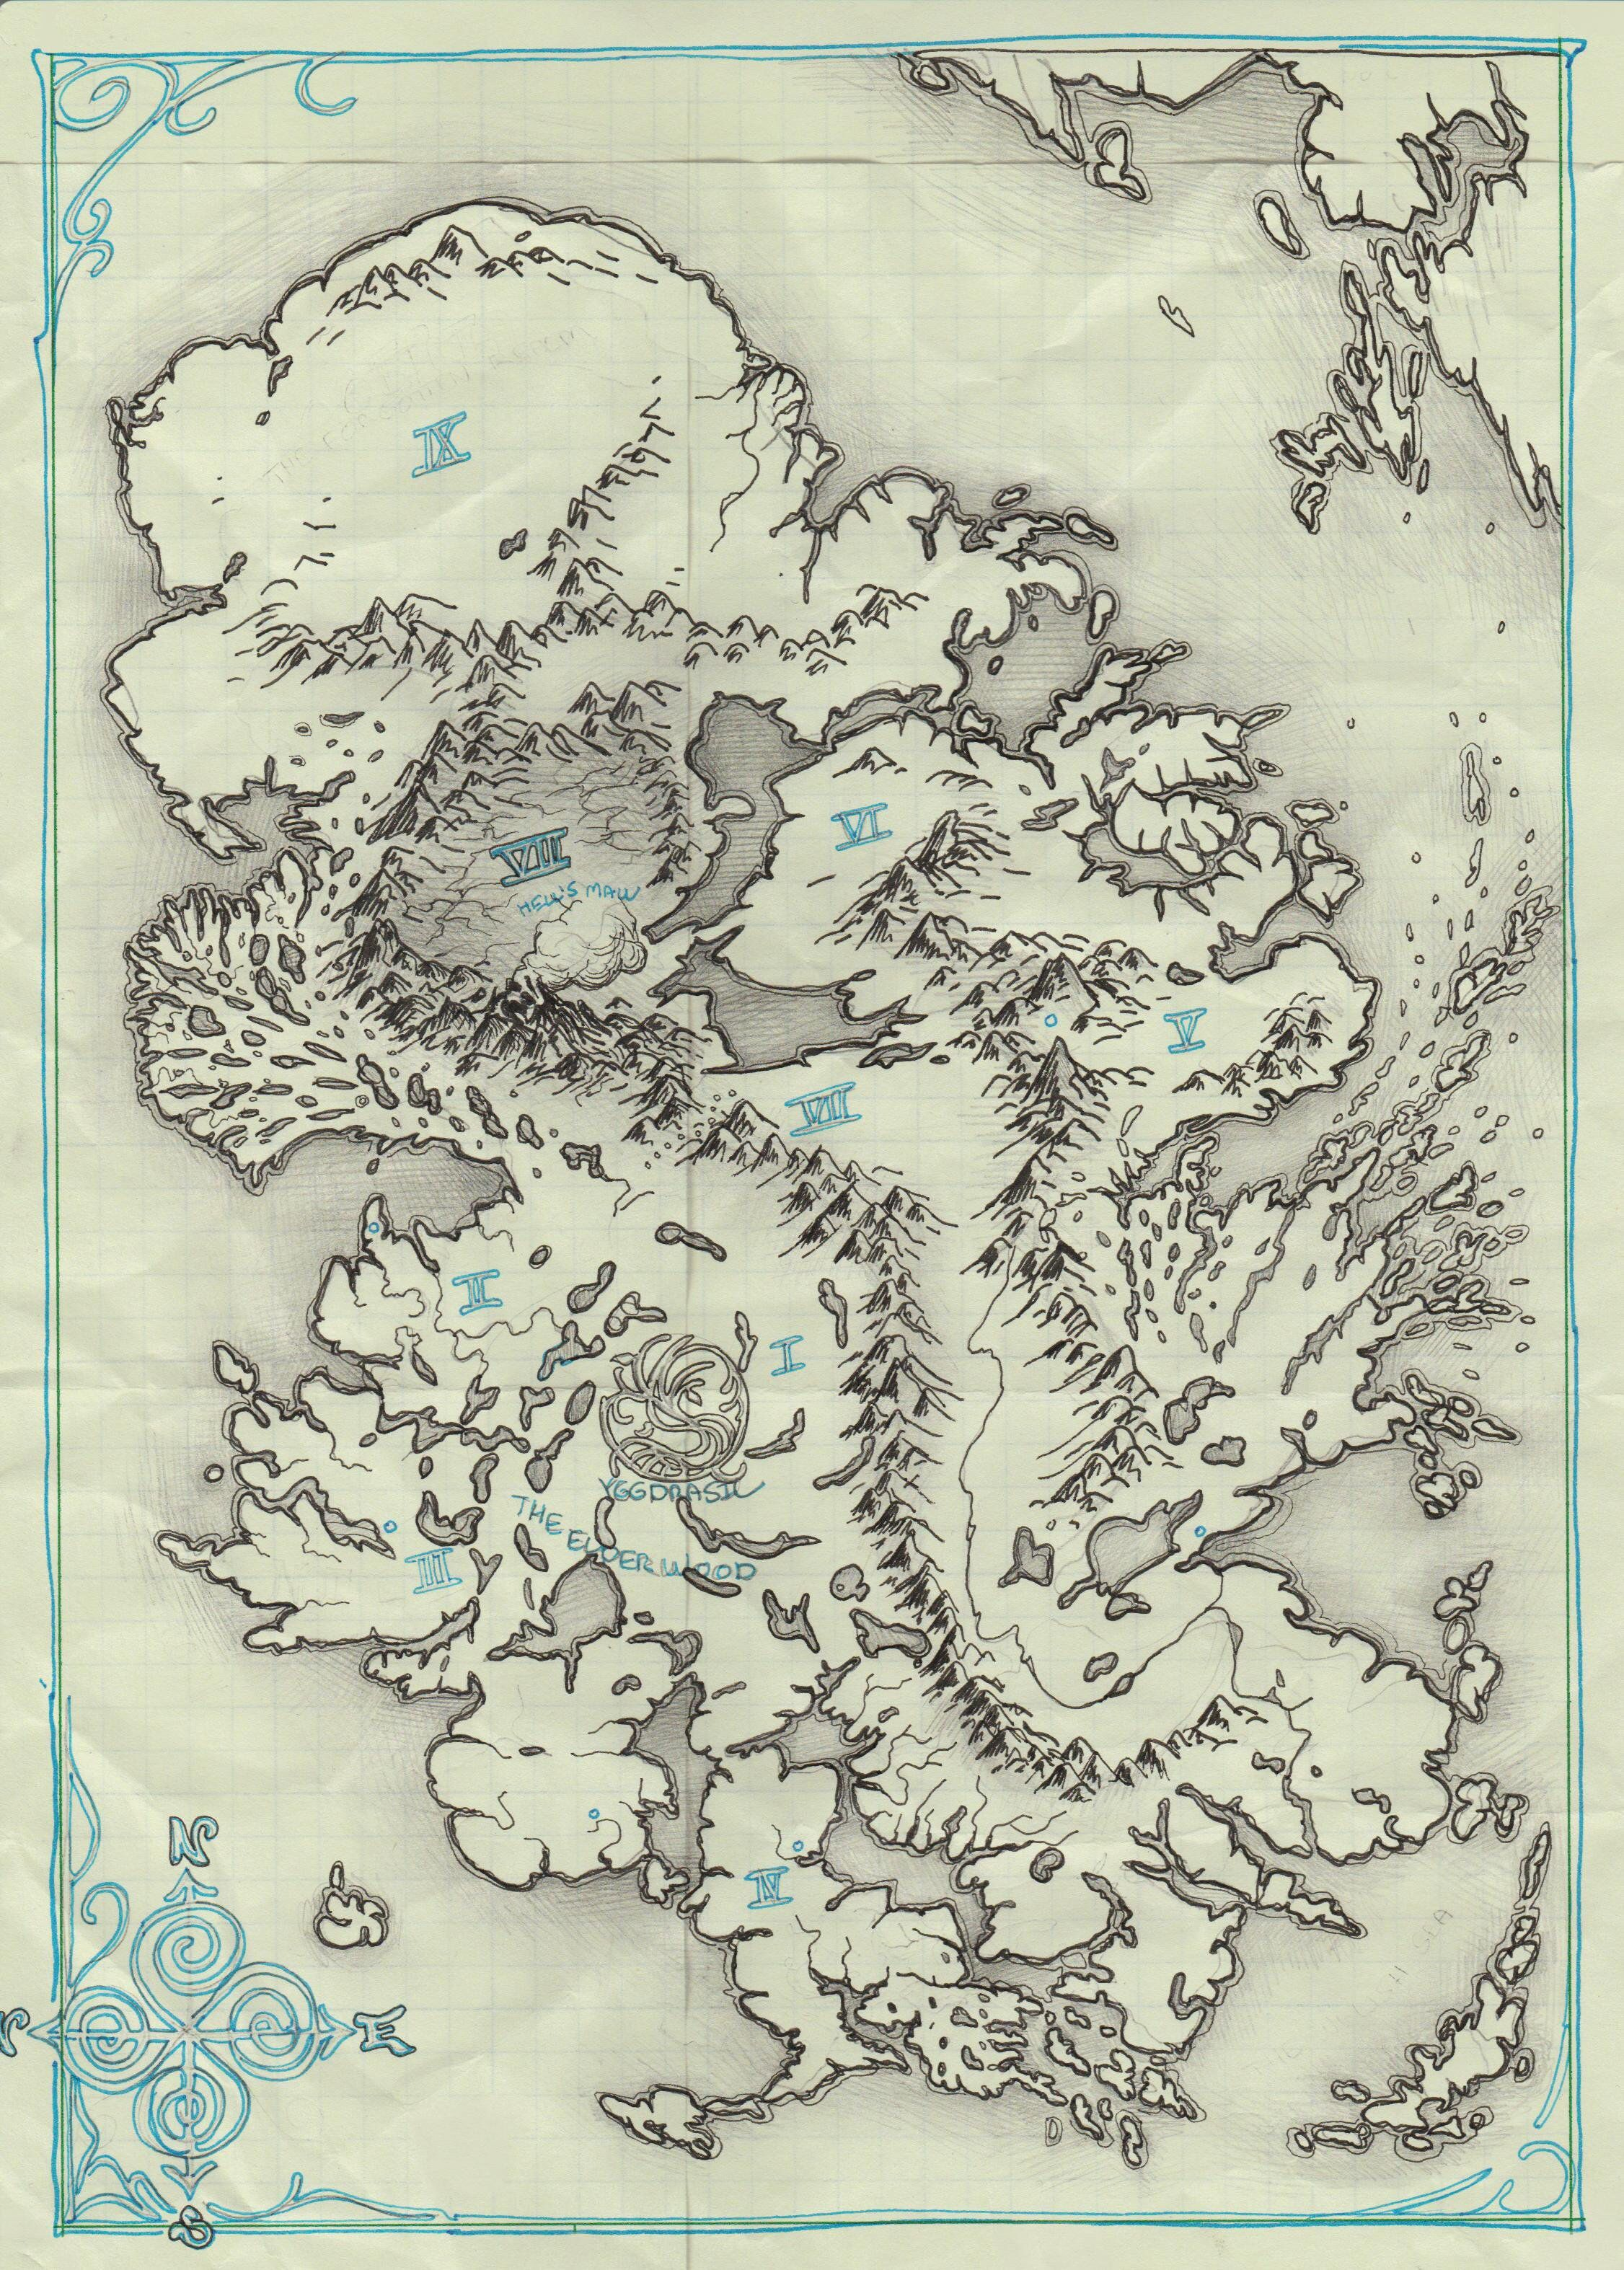 Writing Inspiration | D&D Maps in 2019 | Dnd world map ... on mythological world map, webkinz world map, world system map, ancient language map, sick world map, perfect society map, futuristic town map, second world map, imagination world map, make believe island map, create your own fictional map, living world map, fictional world map, ideology world map, first law abercrombie map, persistent world map, one piece world map, large world map, negative world map, fictional nation map,